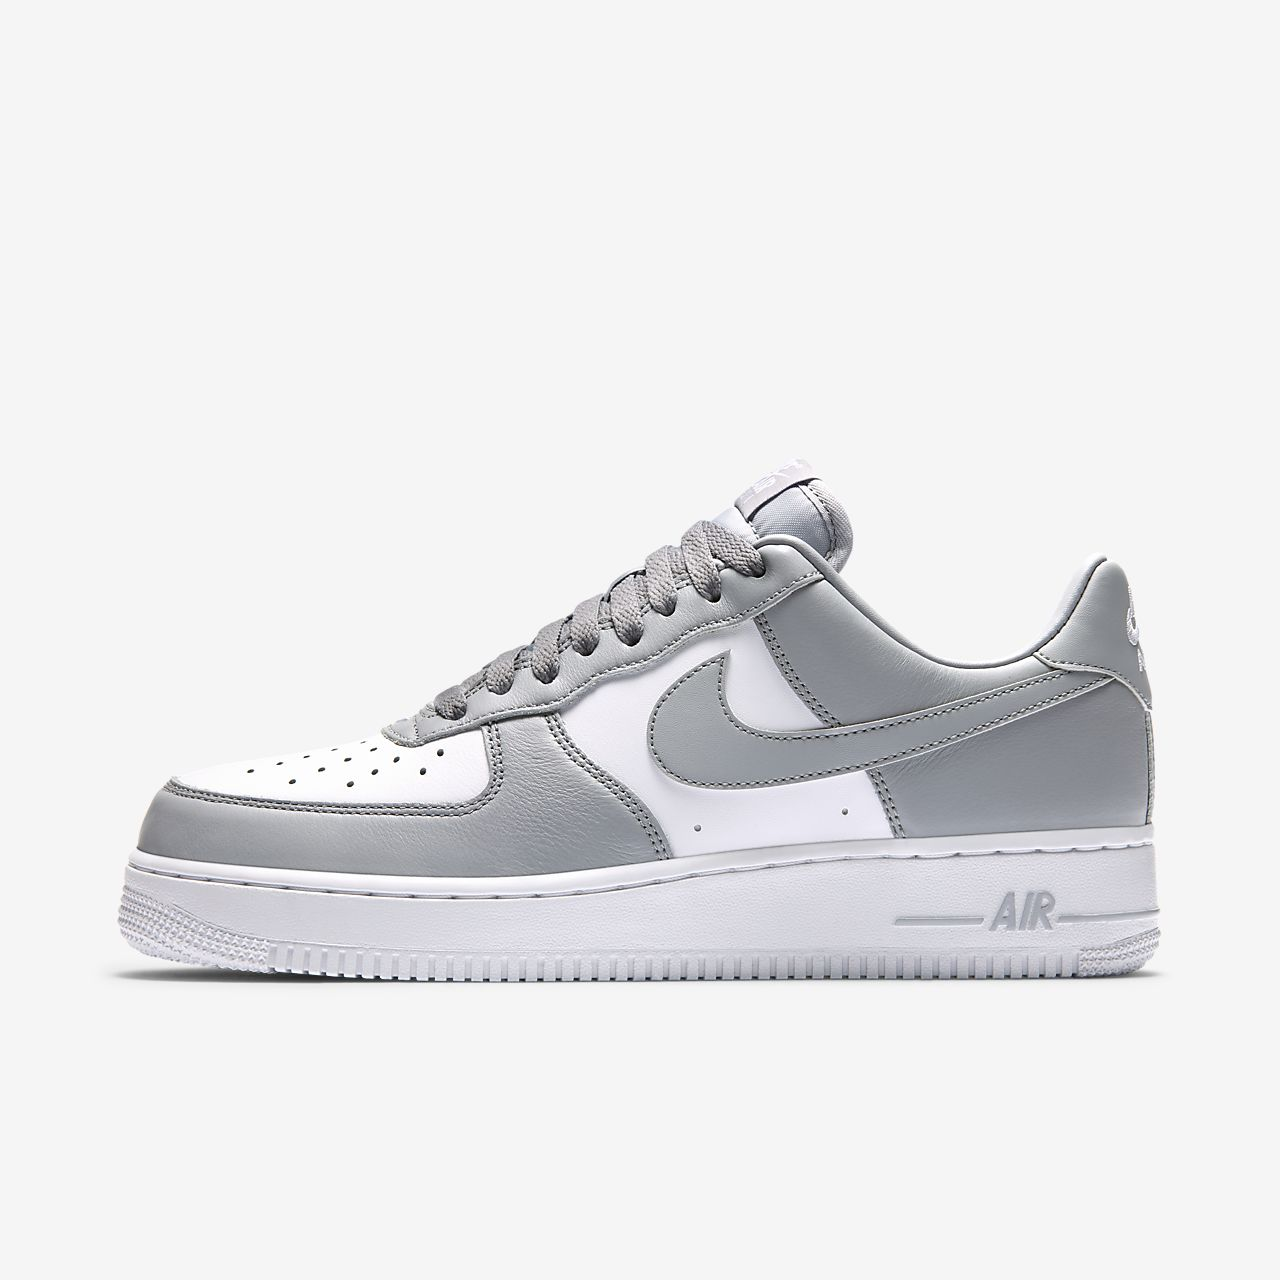 air force 1 low men's nz